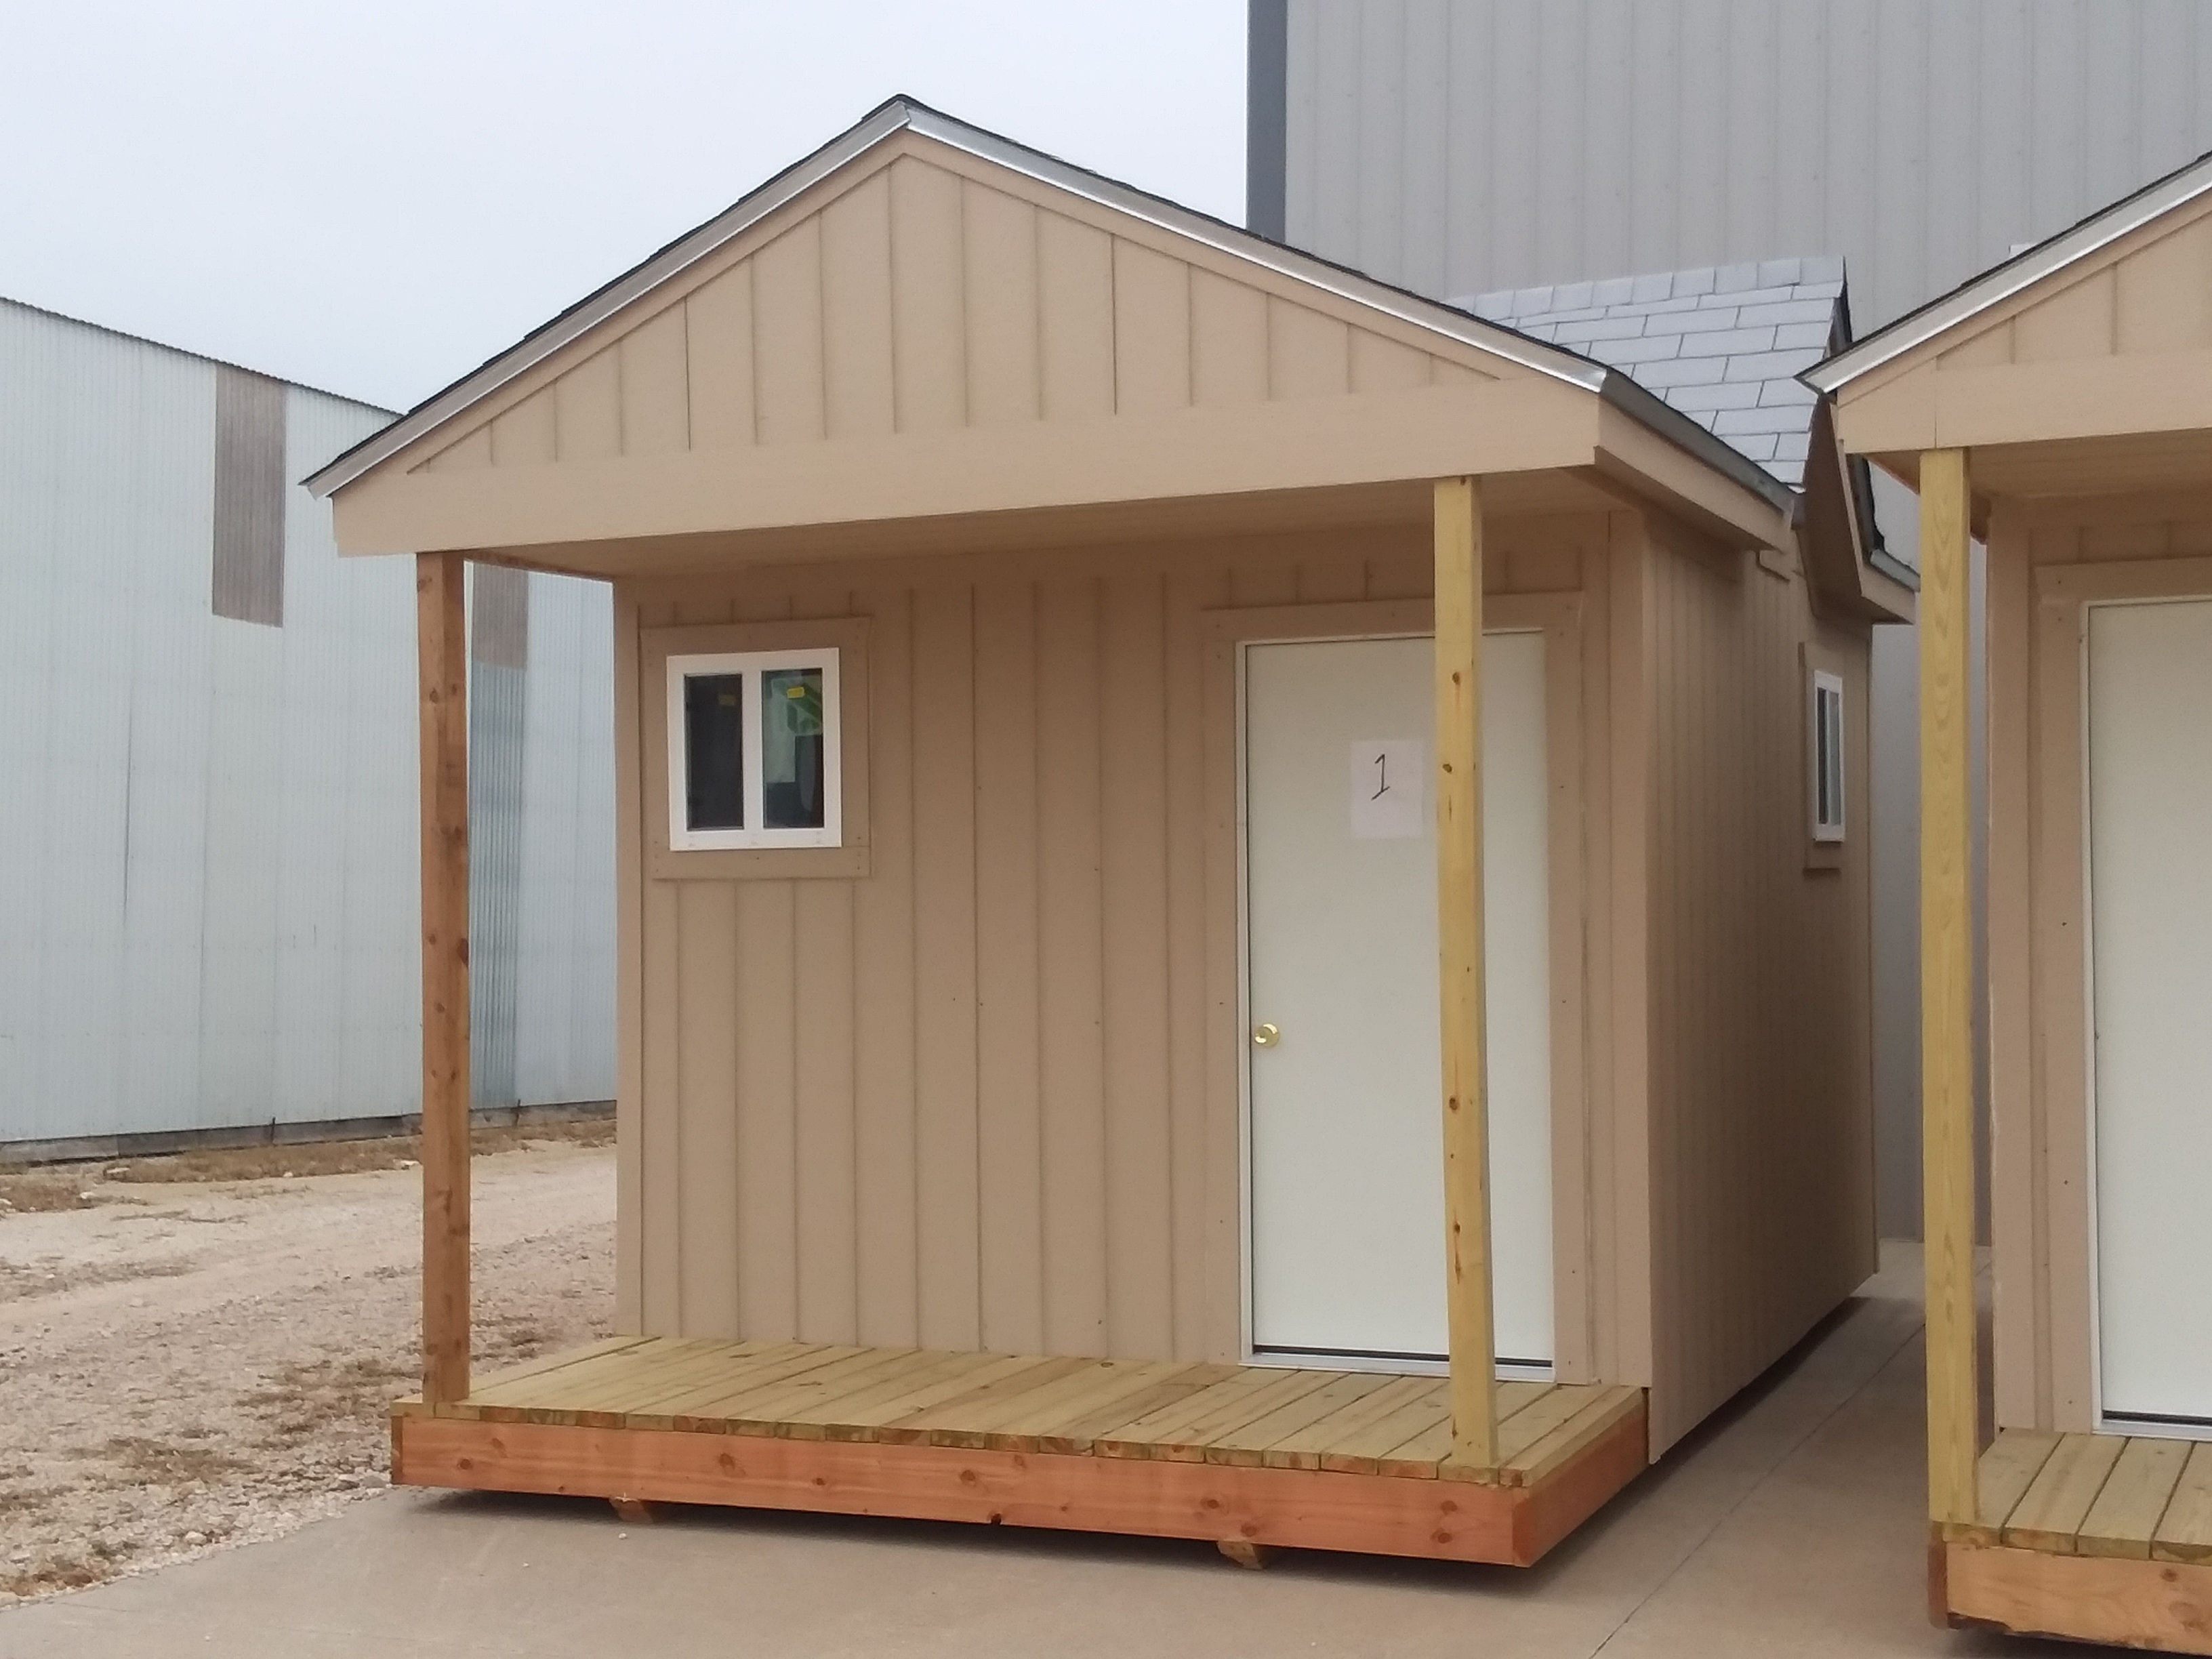 A cabin with a window and door on its front face, a small porch, and the number 1 on the door.